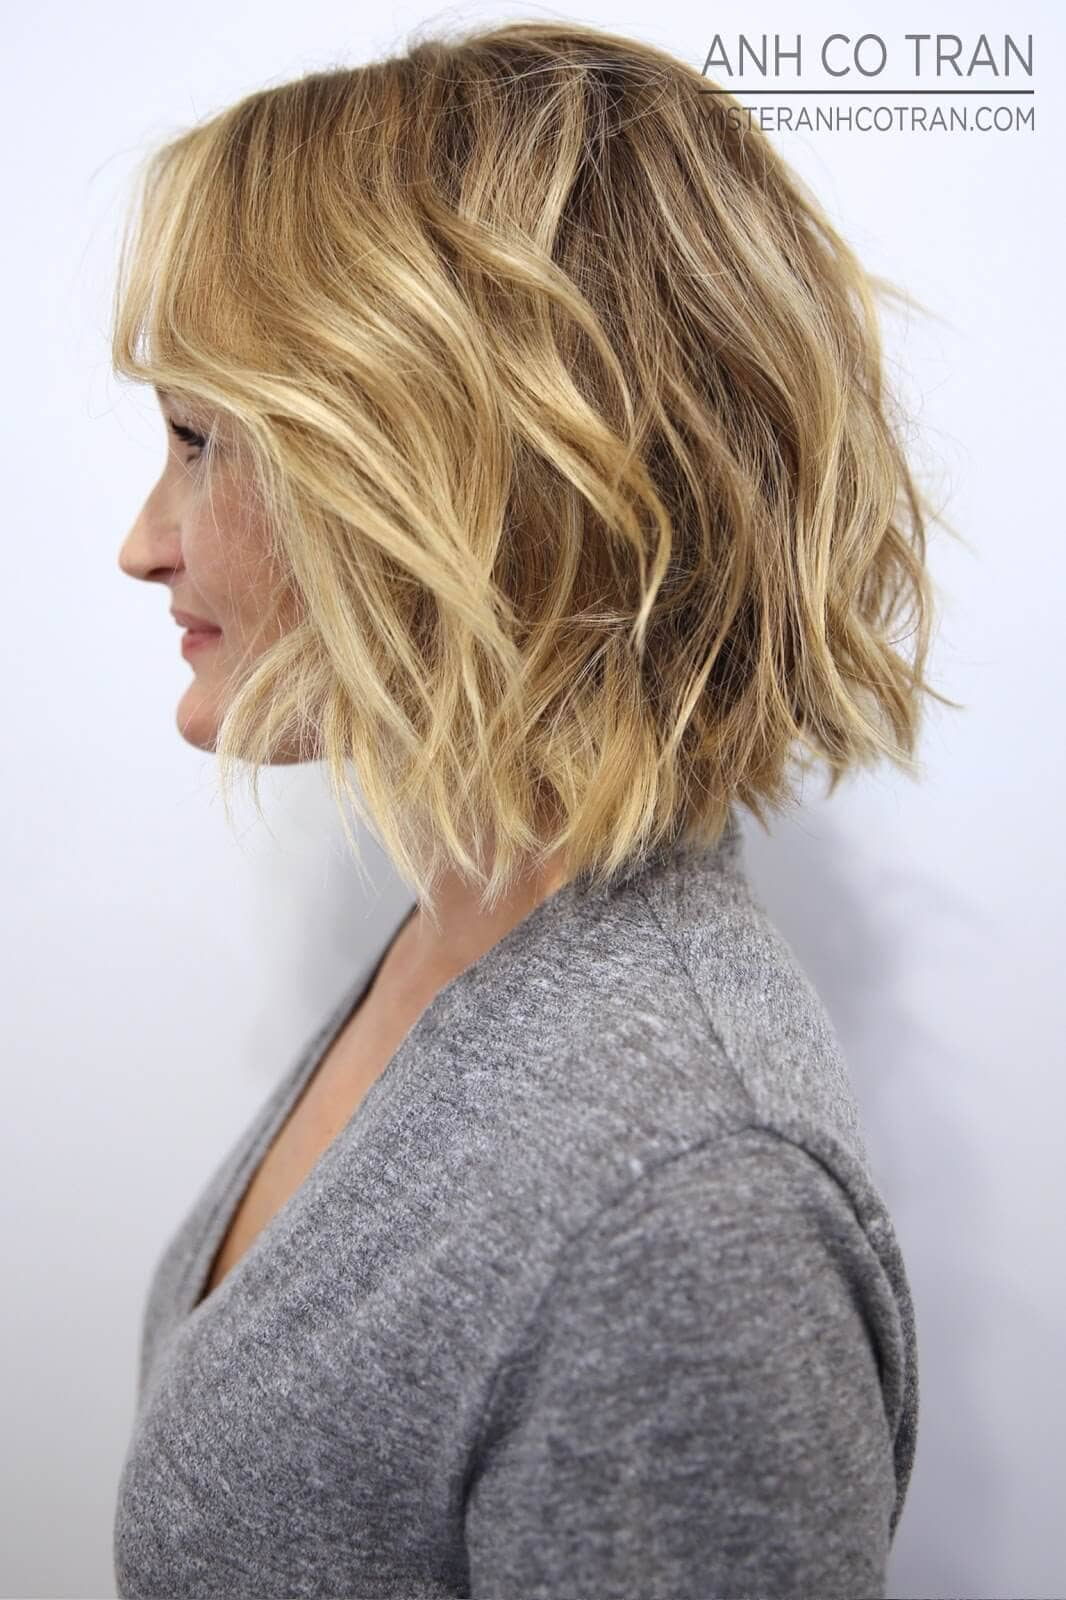 pics 19 Hottest Layered Haircuts with Bangs for 2019